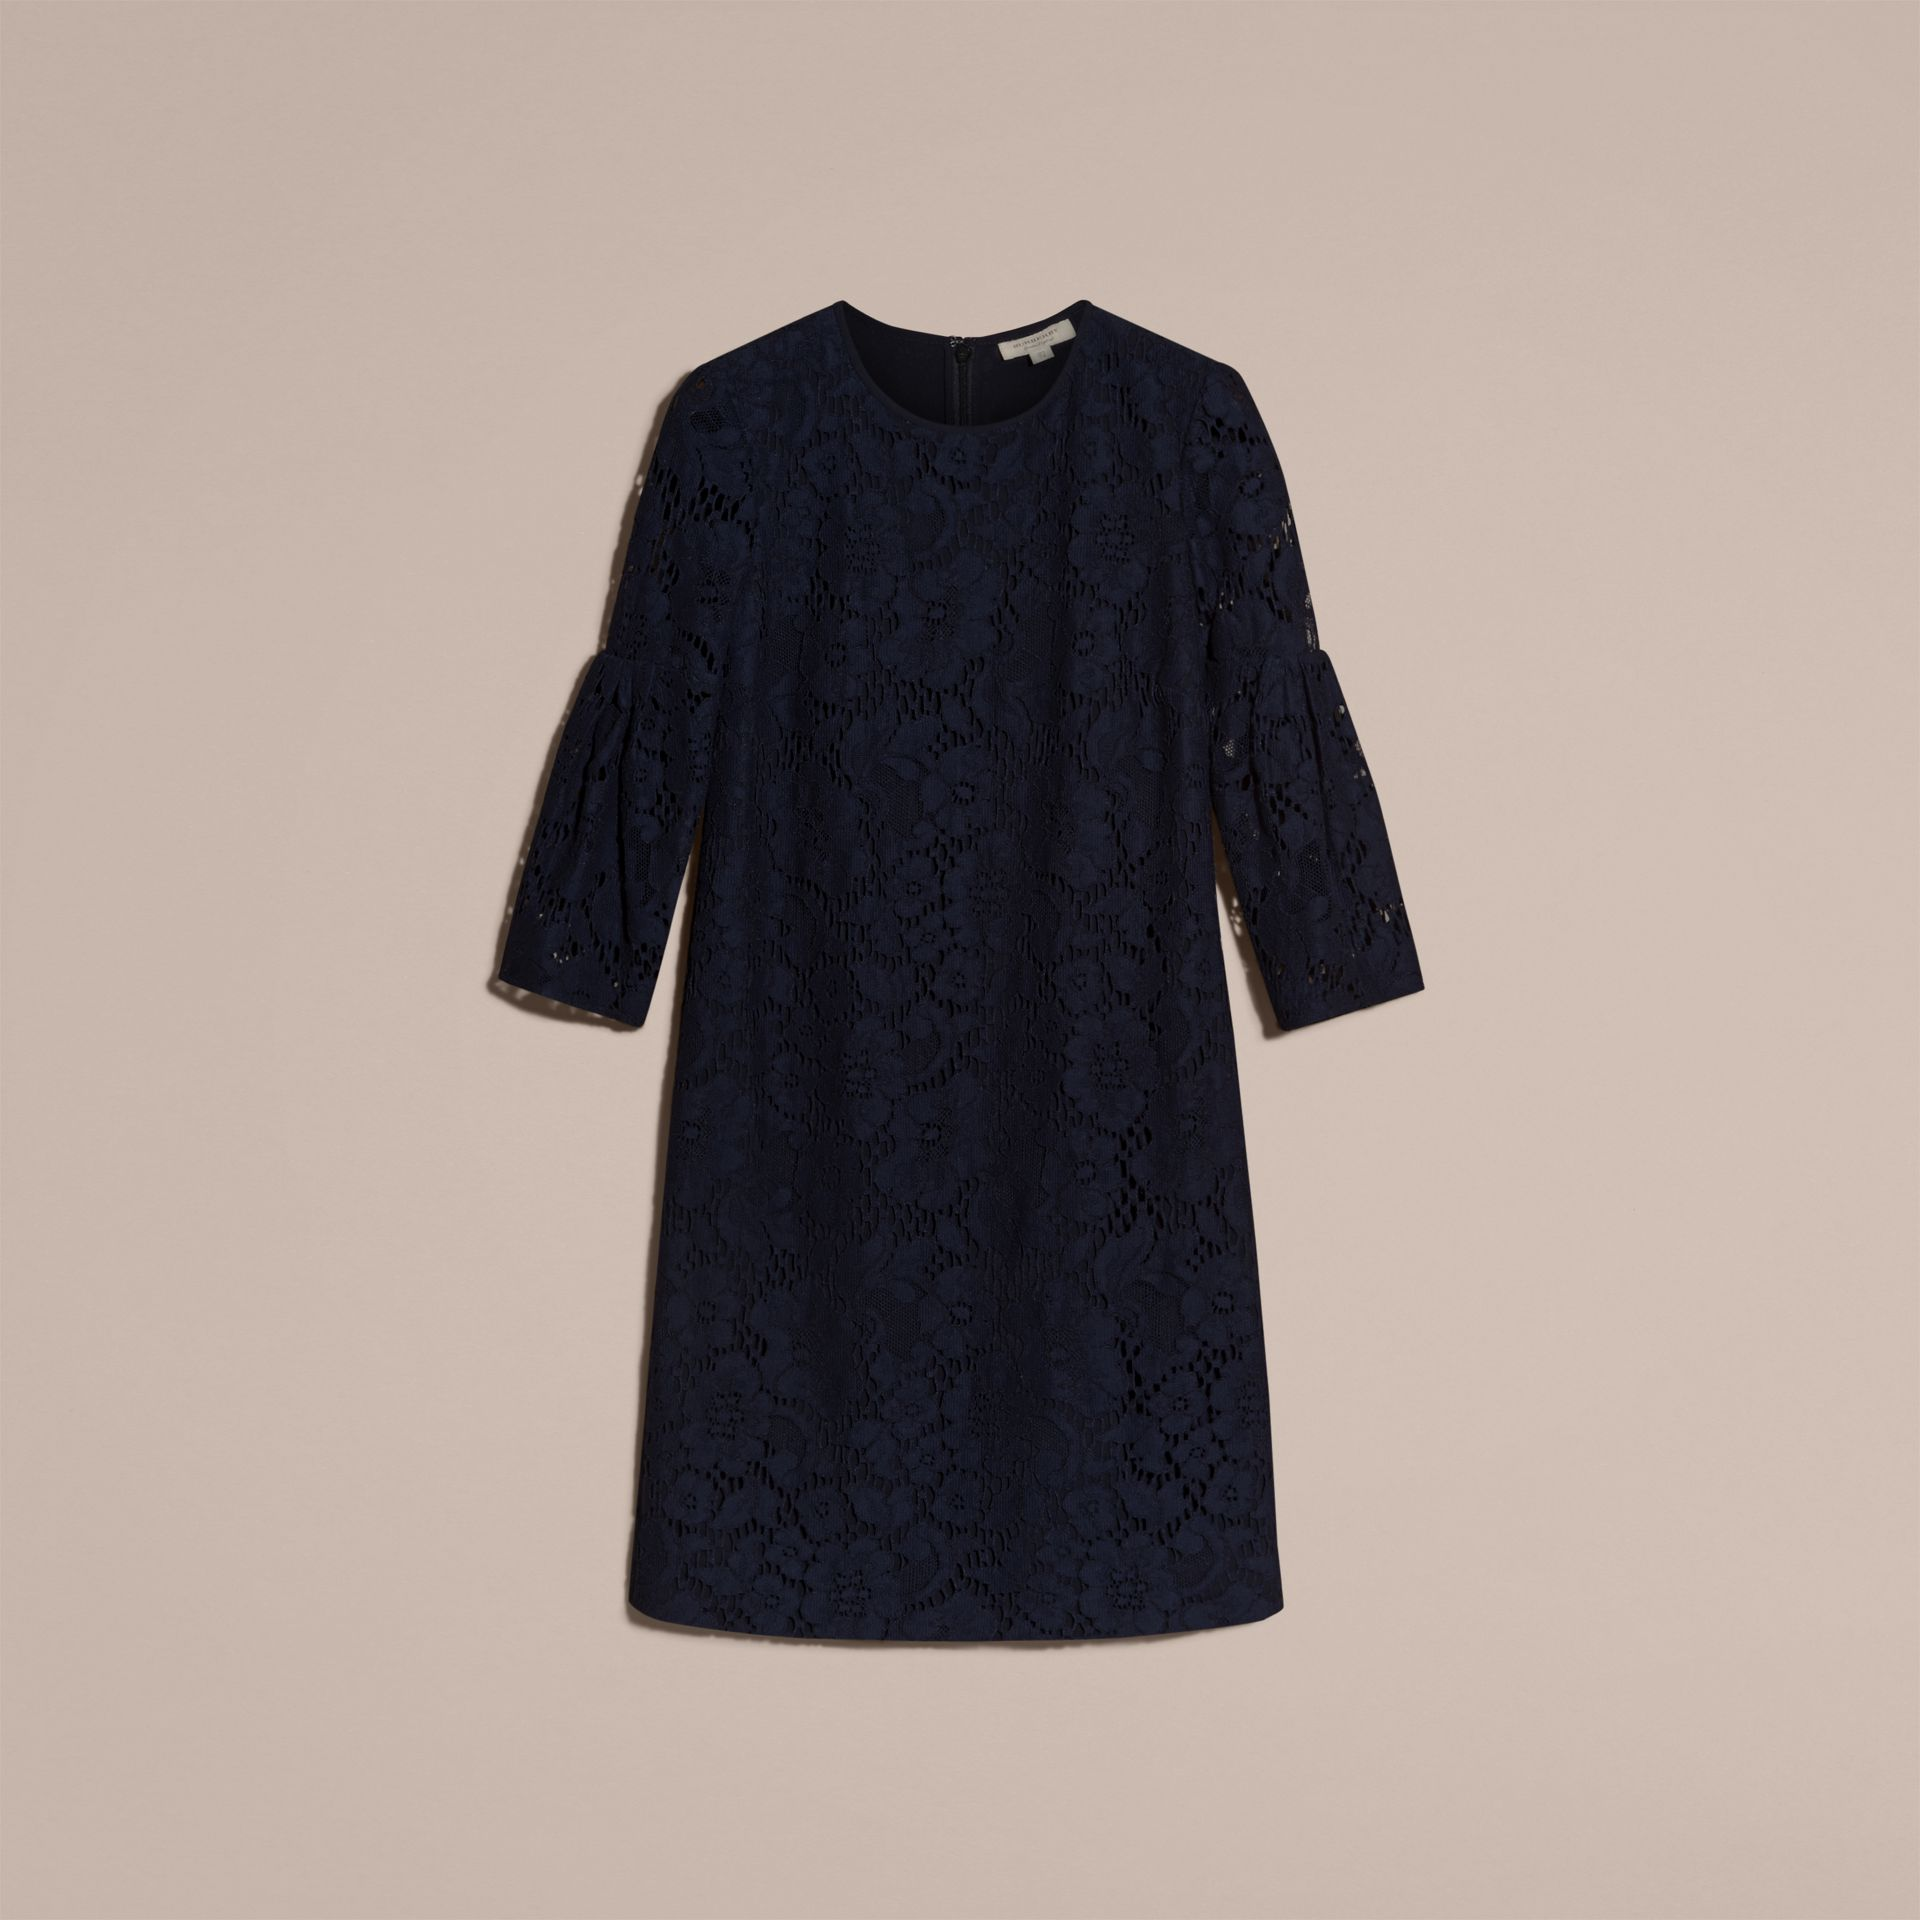 Navy Puff-sleeved Floral Lace Shift Dress - gallery image 4